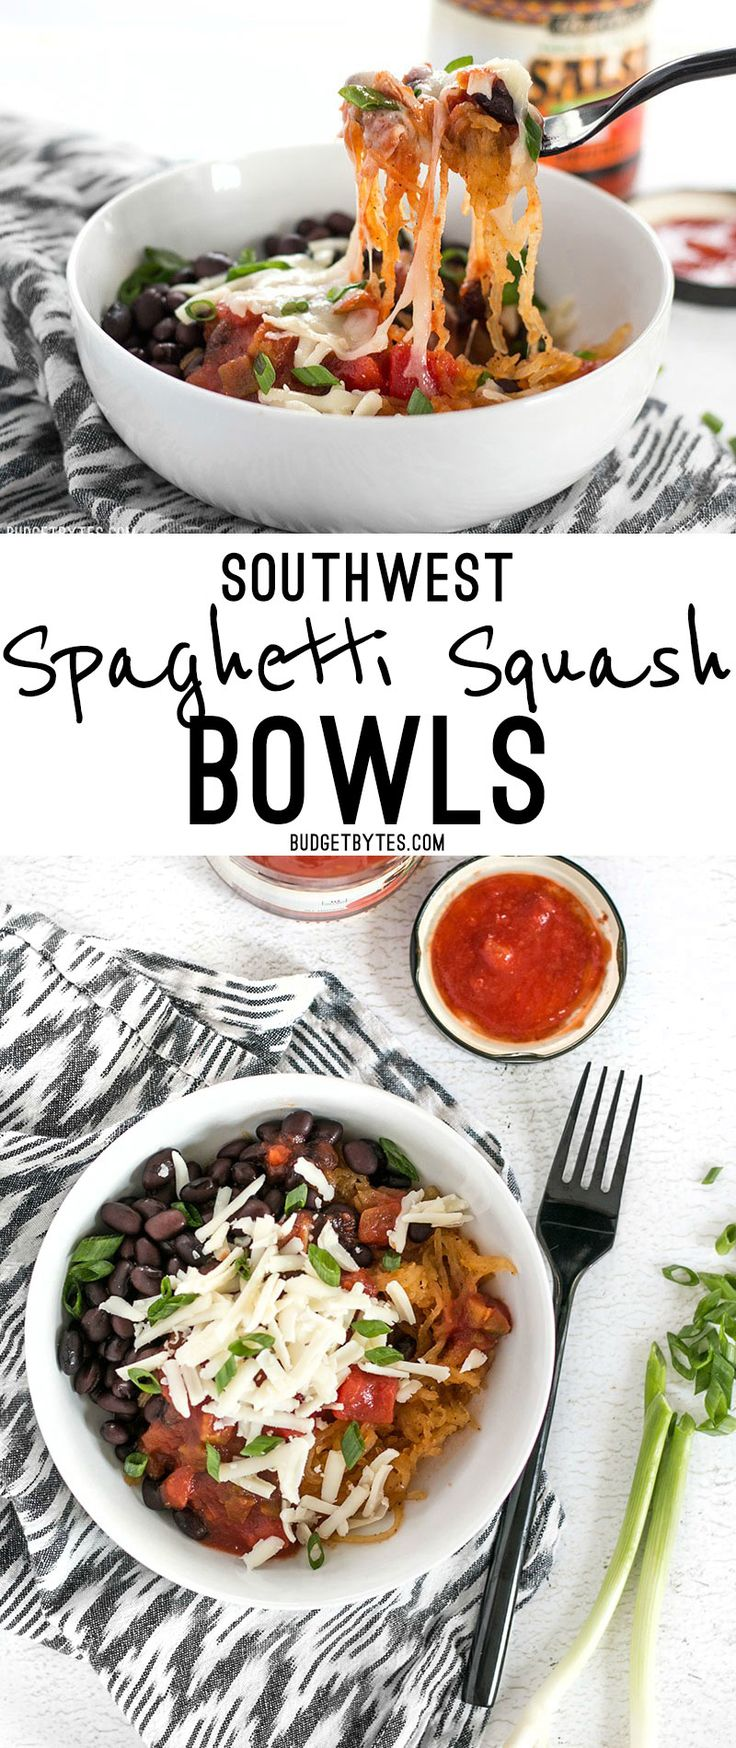 Spaghetti squash makes a great fiber-filled low-carb substitute for rice in these Southwest Spaghetti Squash Bowls.